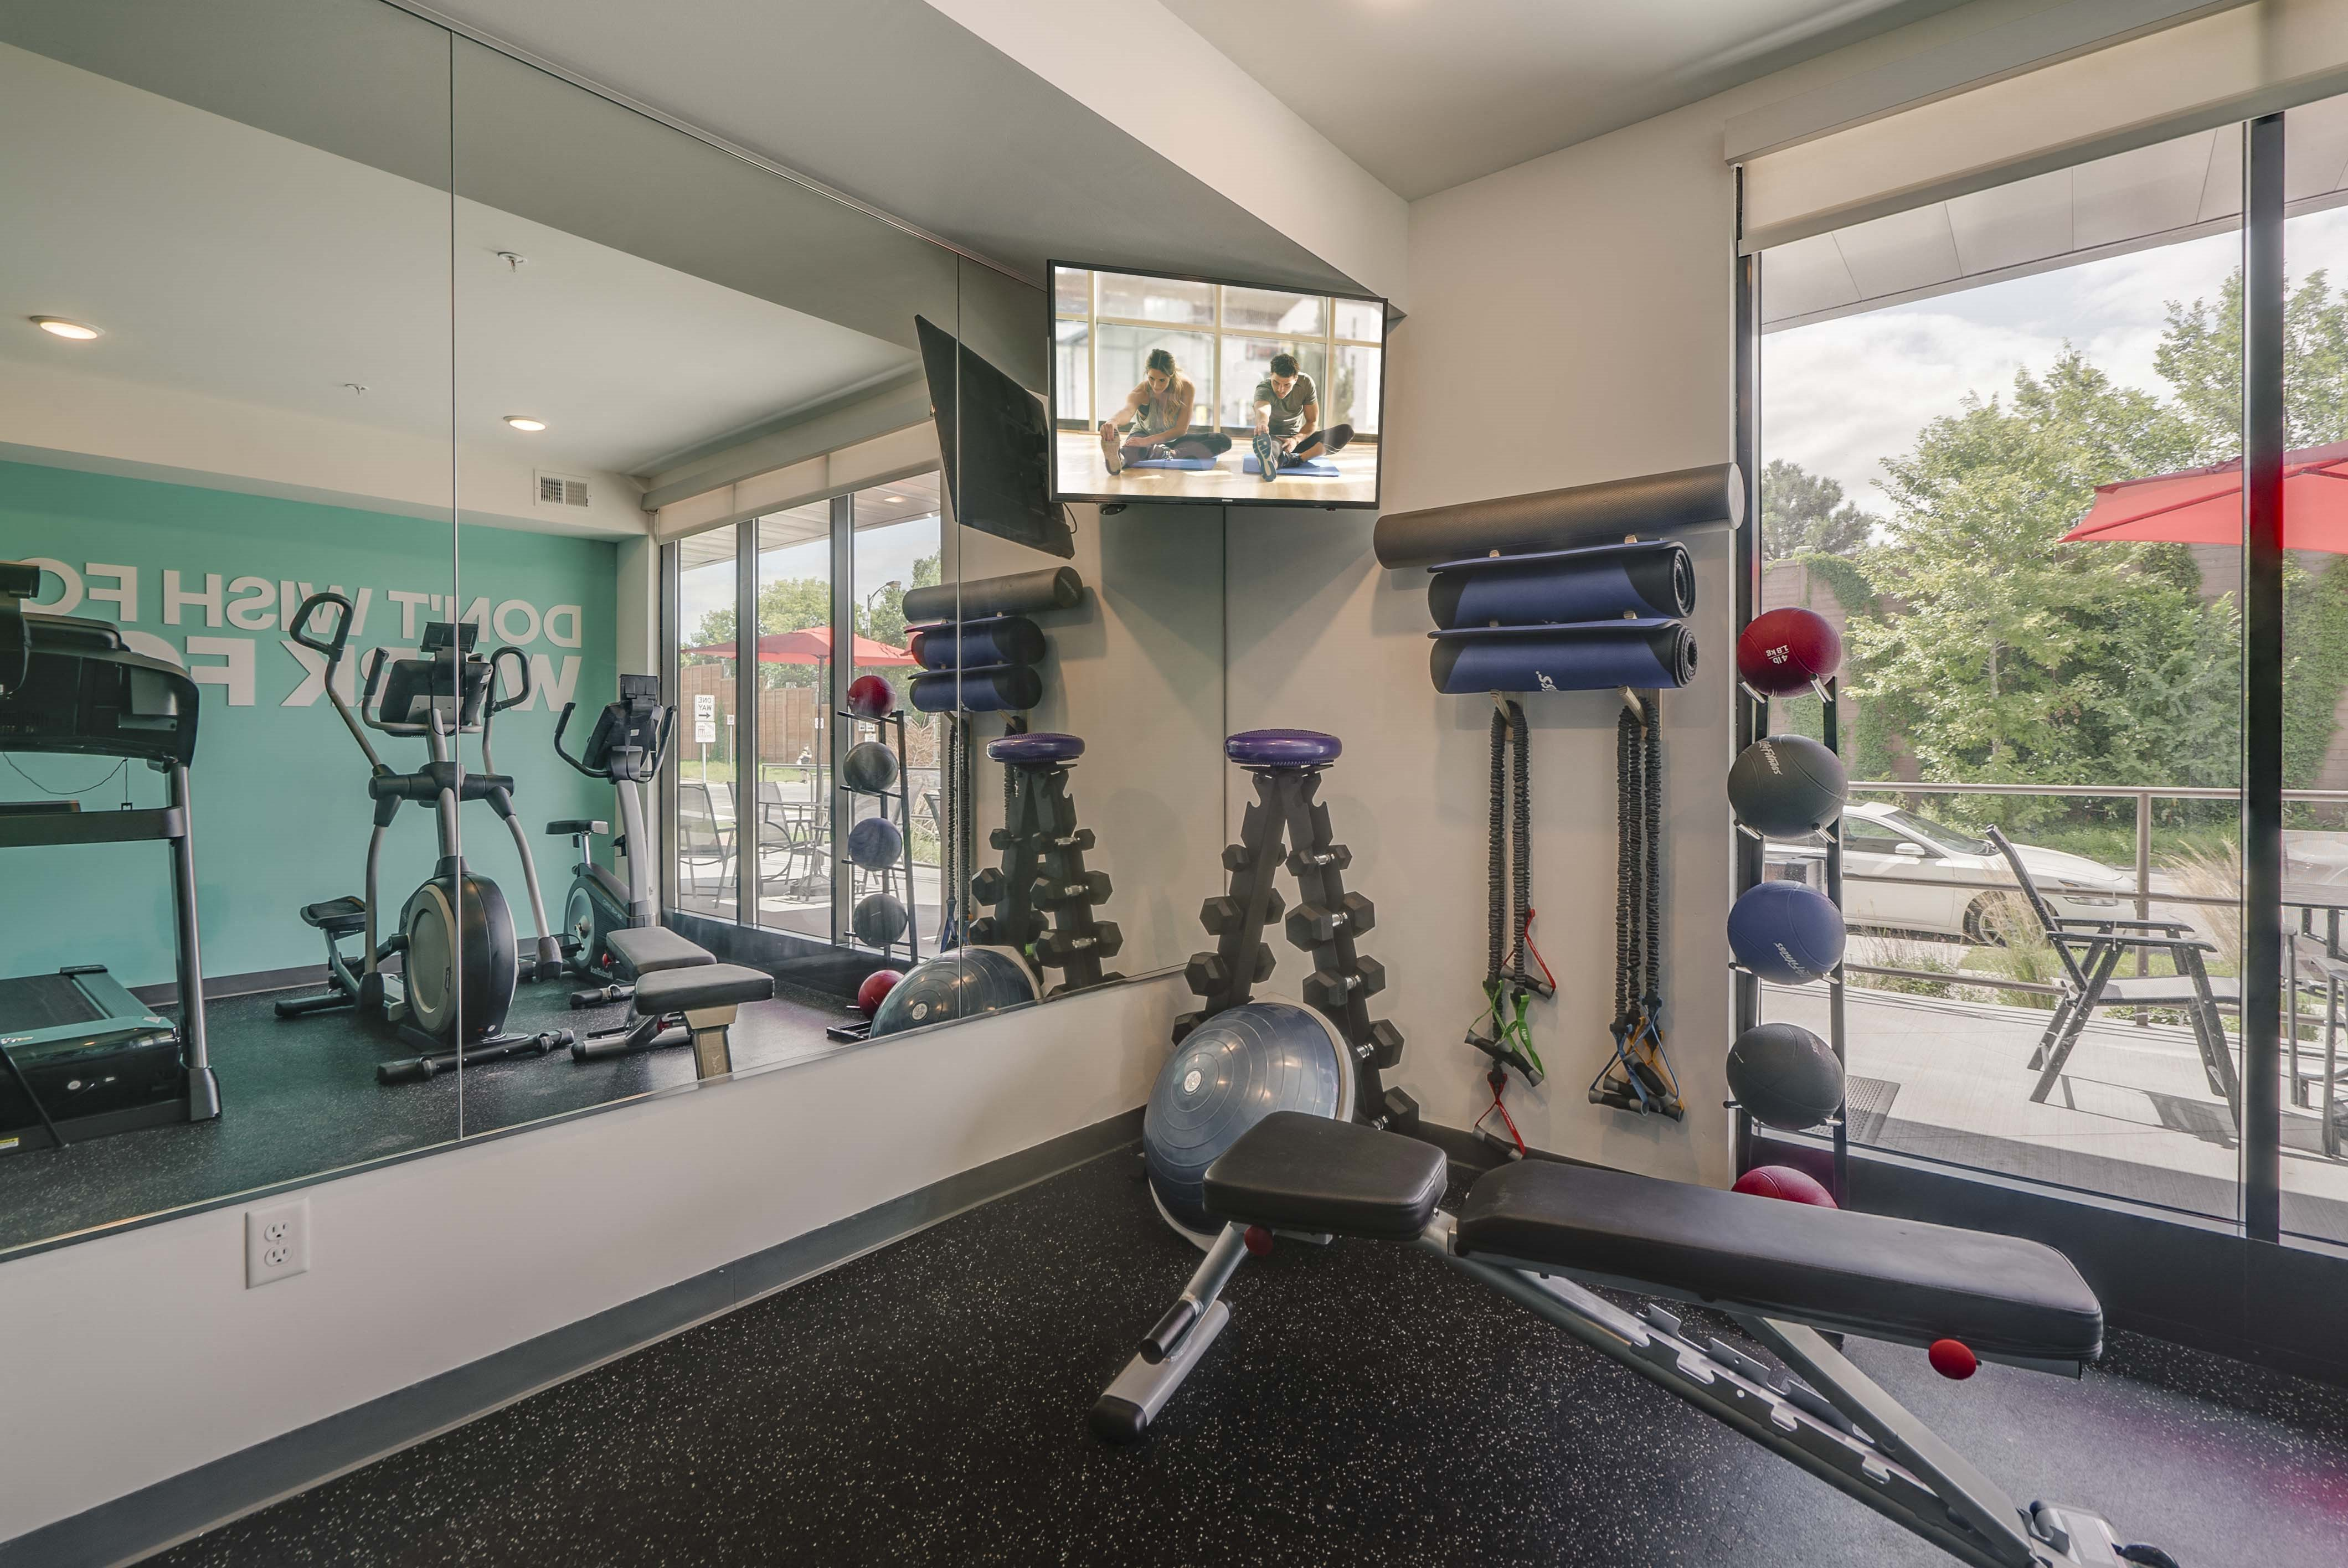 Fitness Center with cardio equipment at The Central apartments near downtown Minneapolis MN 55408